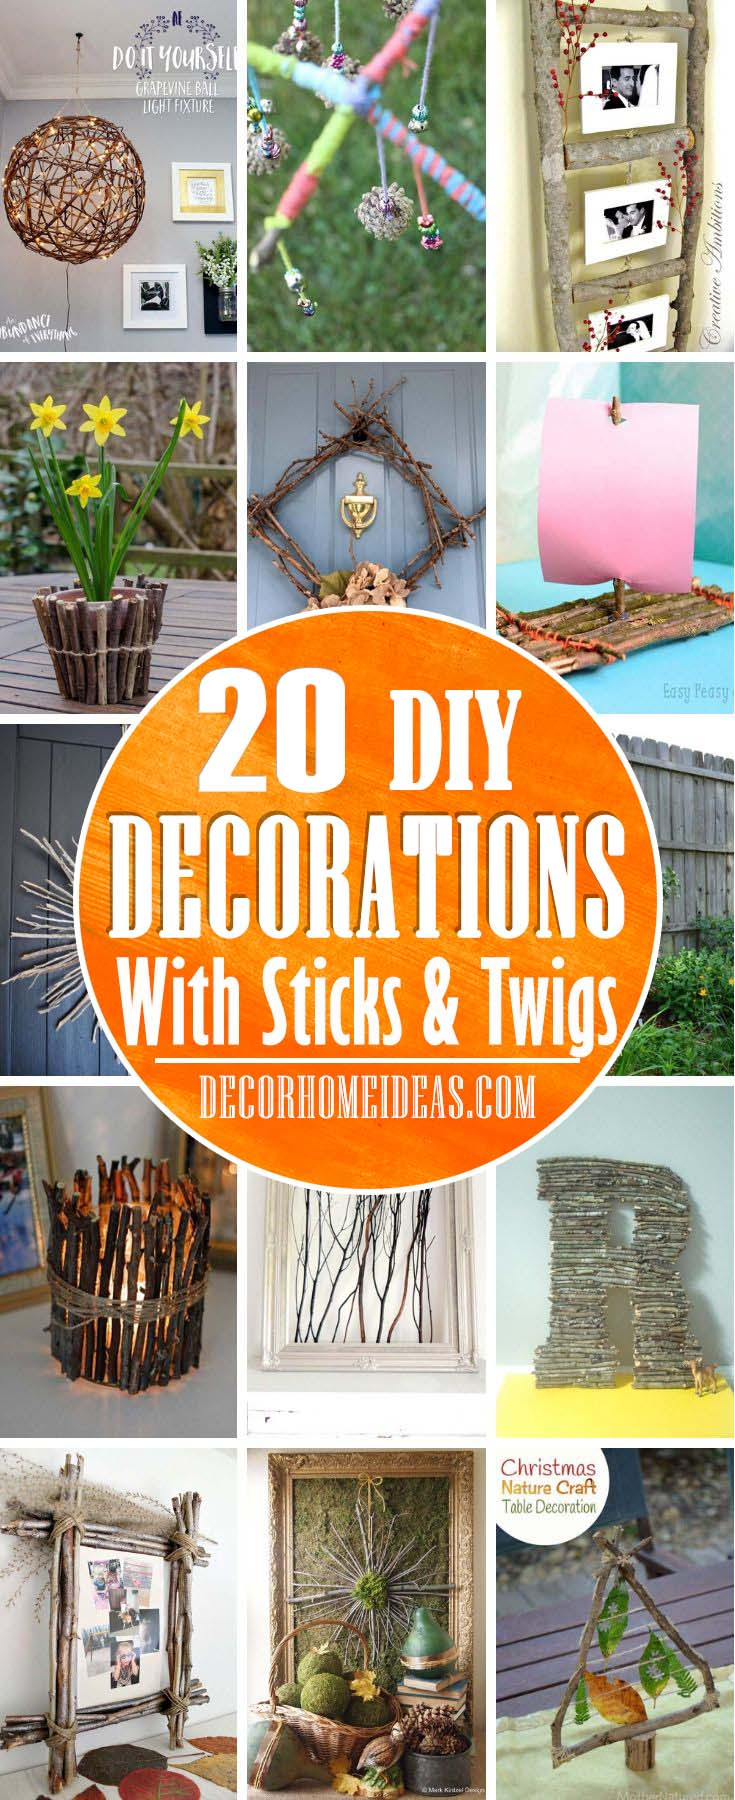 Home And Garden Sticks And Twigs DIY. Inexpensive ideas on how to spruce up your home and garden decor with sticks and twigs. Easy projects that could be done in no time. #decorhomeideas